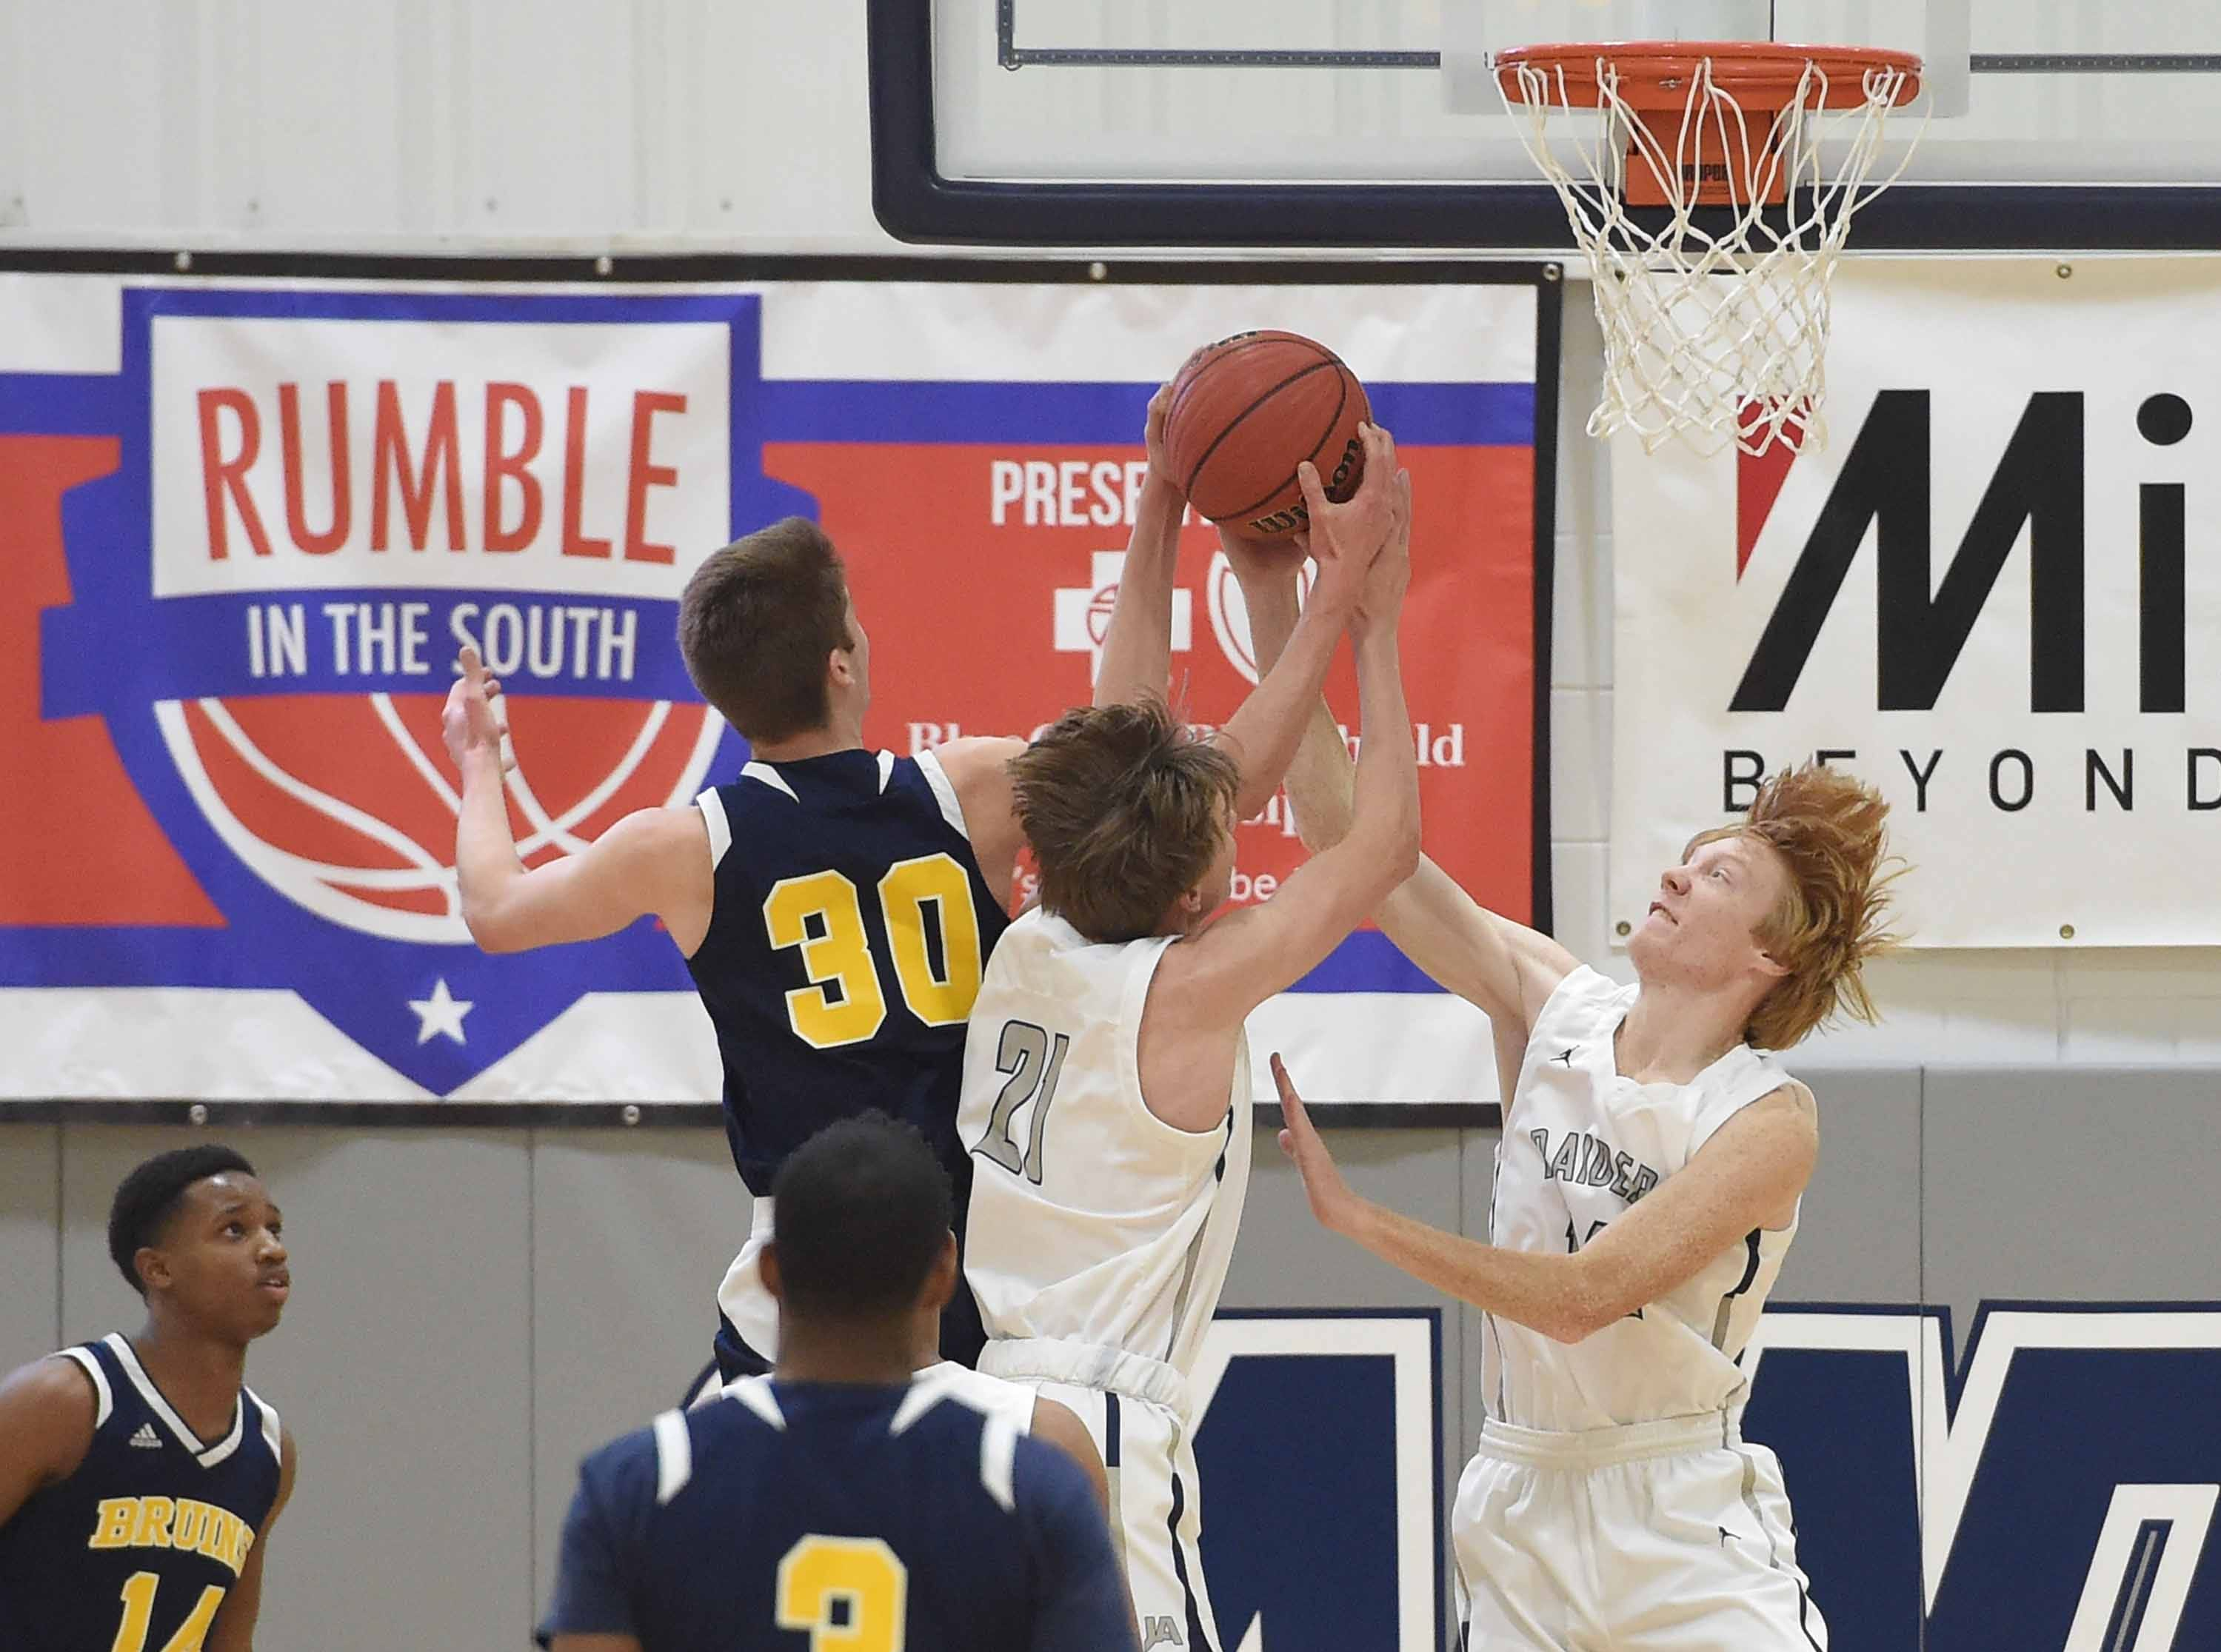 St. Joseph's Grayson Foley (30) battles for a rebound with Jackson Academy's Jonathan Lucas (21) and Tanner Robertson (14) on Monday, January 21, 2019, at the Rumble in the South high school basketball tournament at St. Andrew's Episcopal School in Ridgeland, Miss.